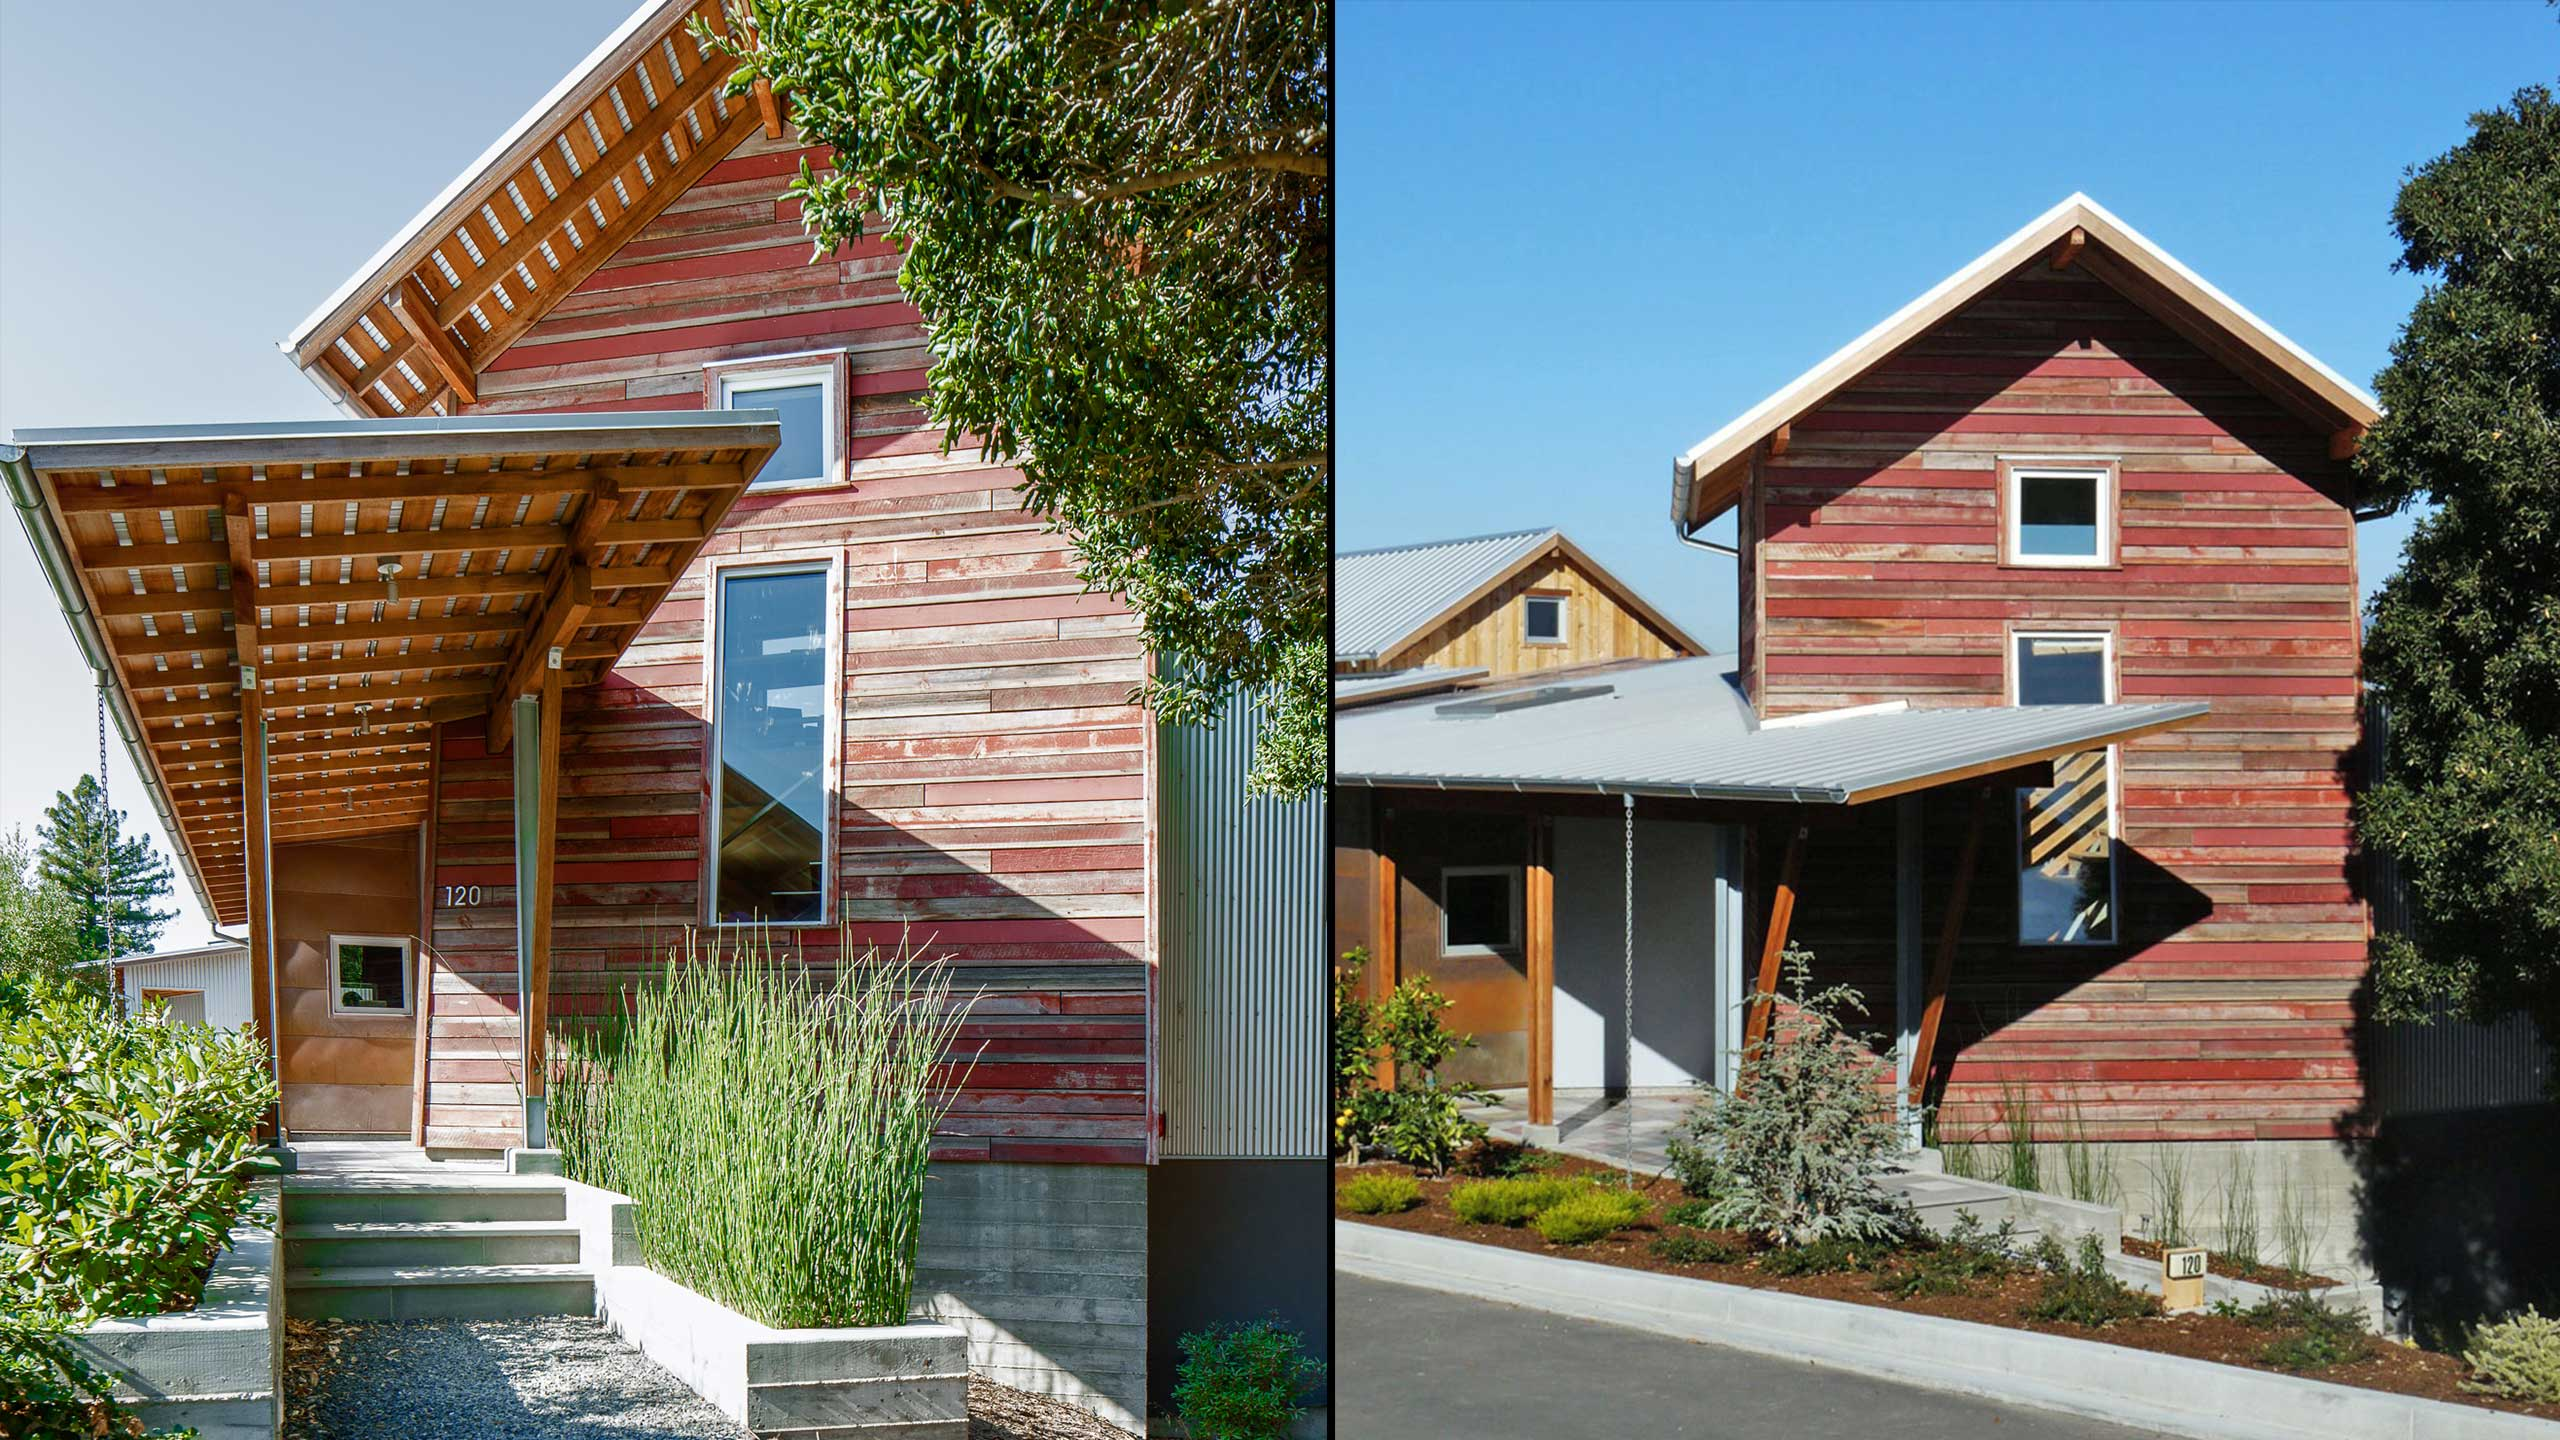 Custom-Home-Sonoma-County-MiJi-Corten-Steel-Facade-and-Tower-with-red-wood-facade